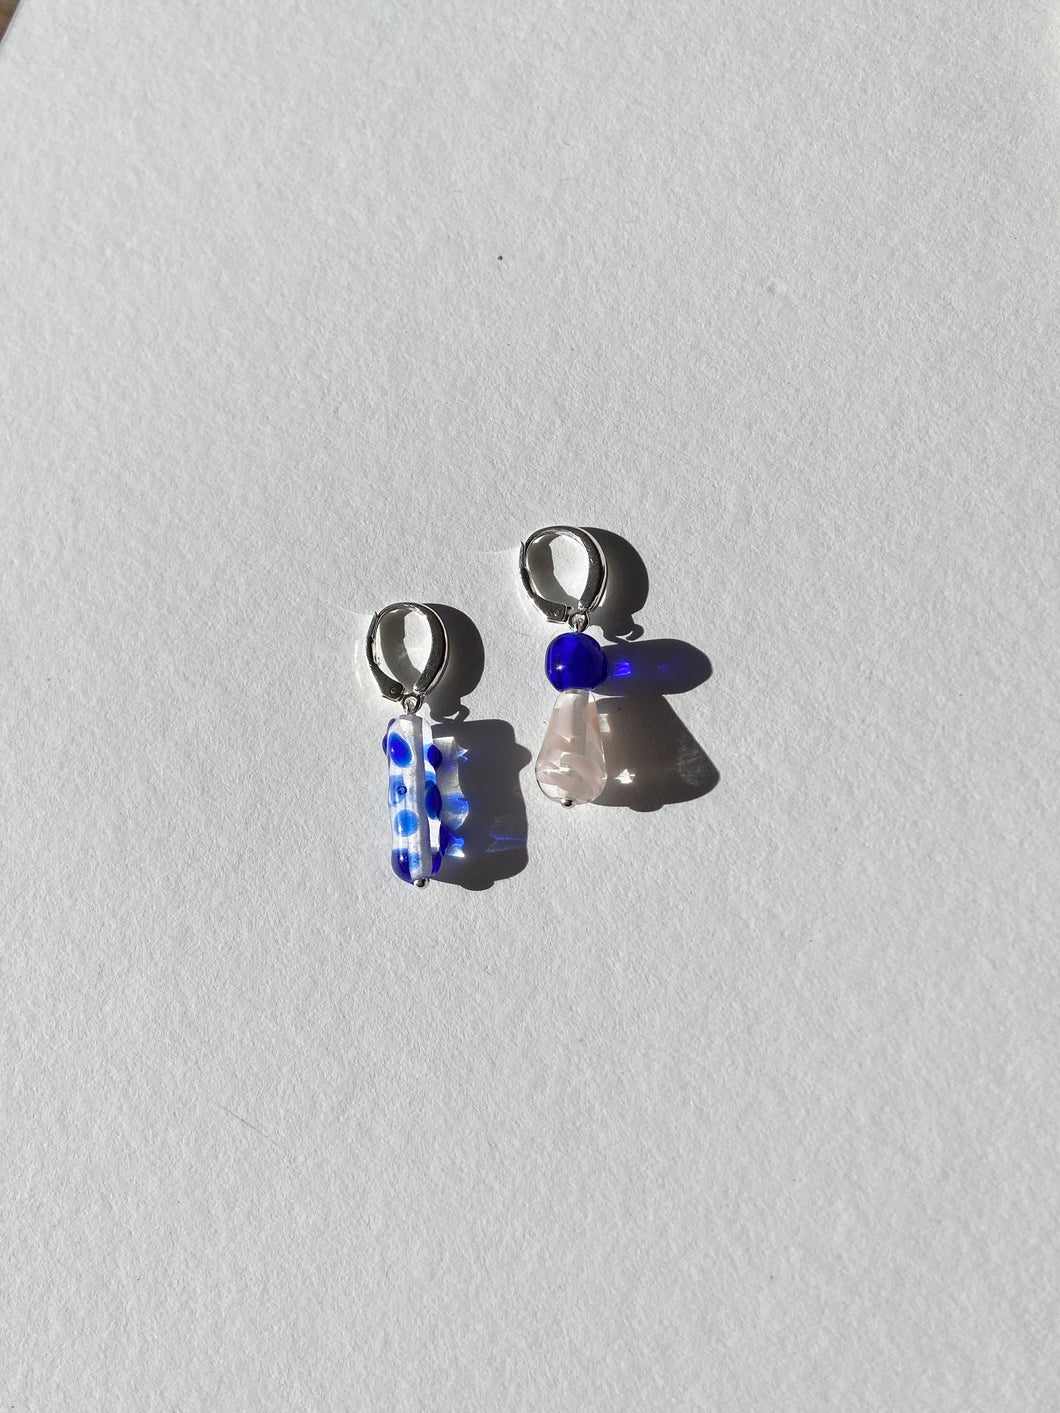 Speio Earrings